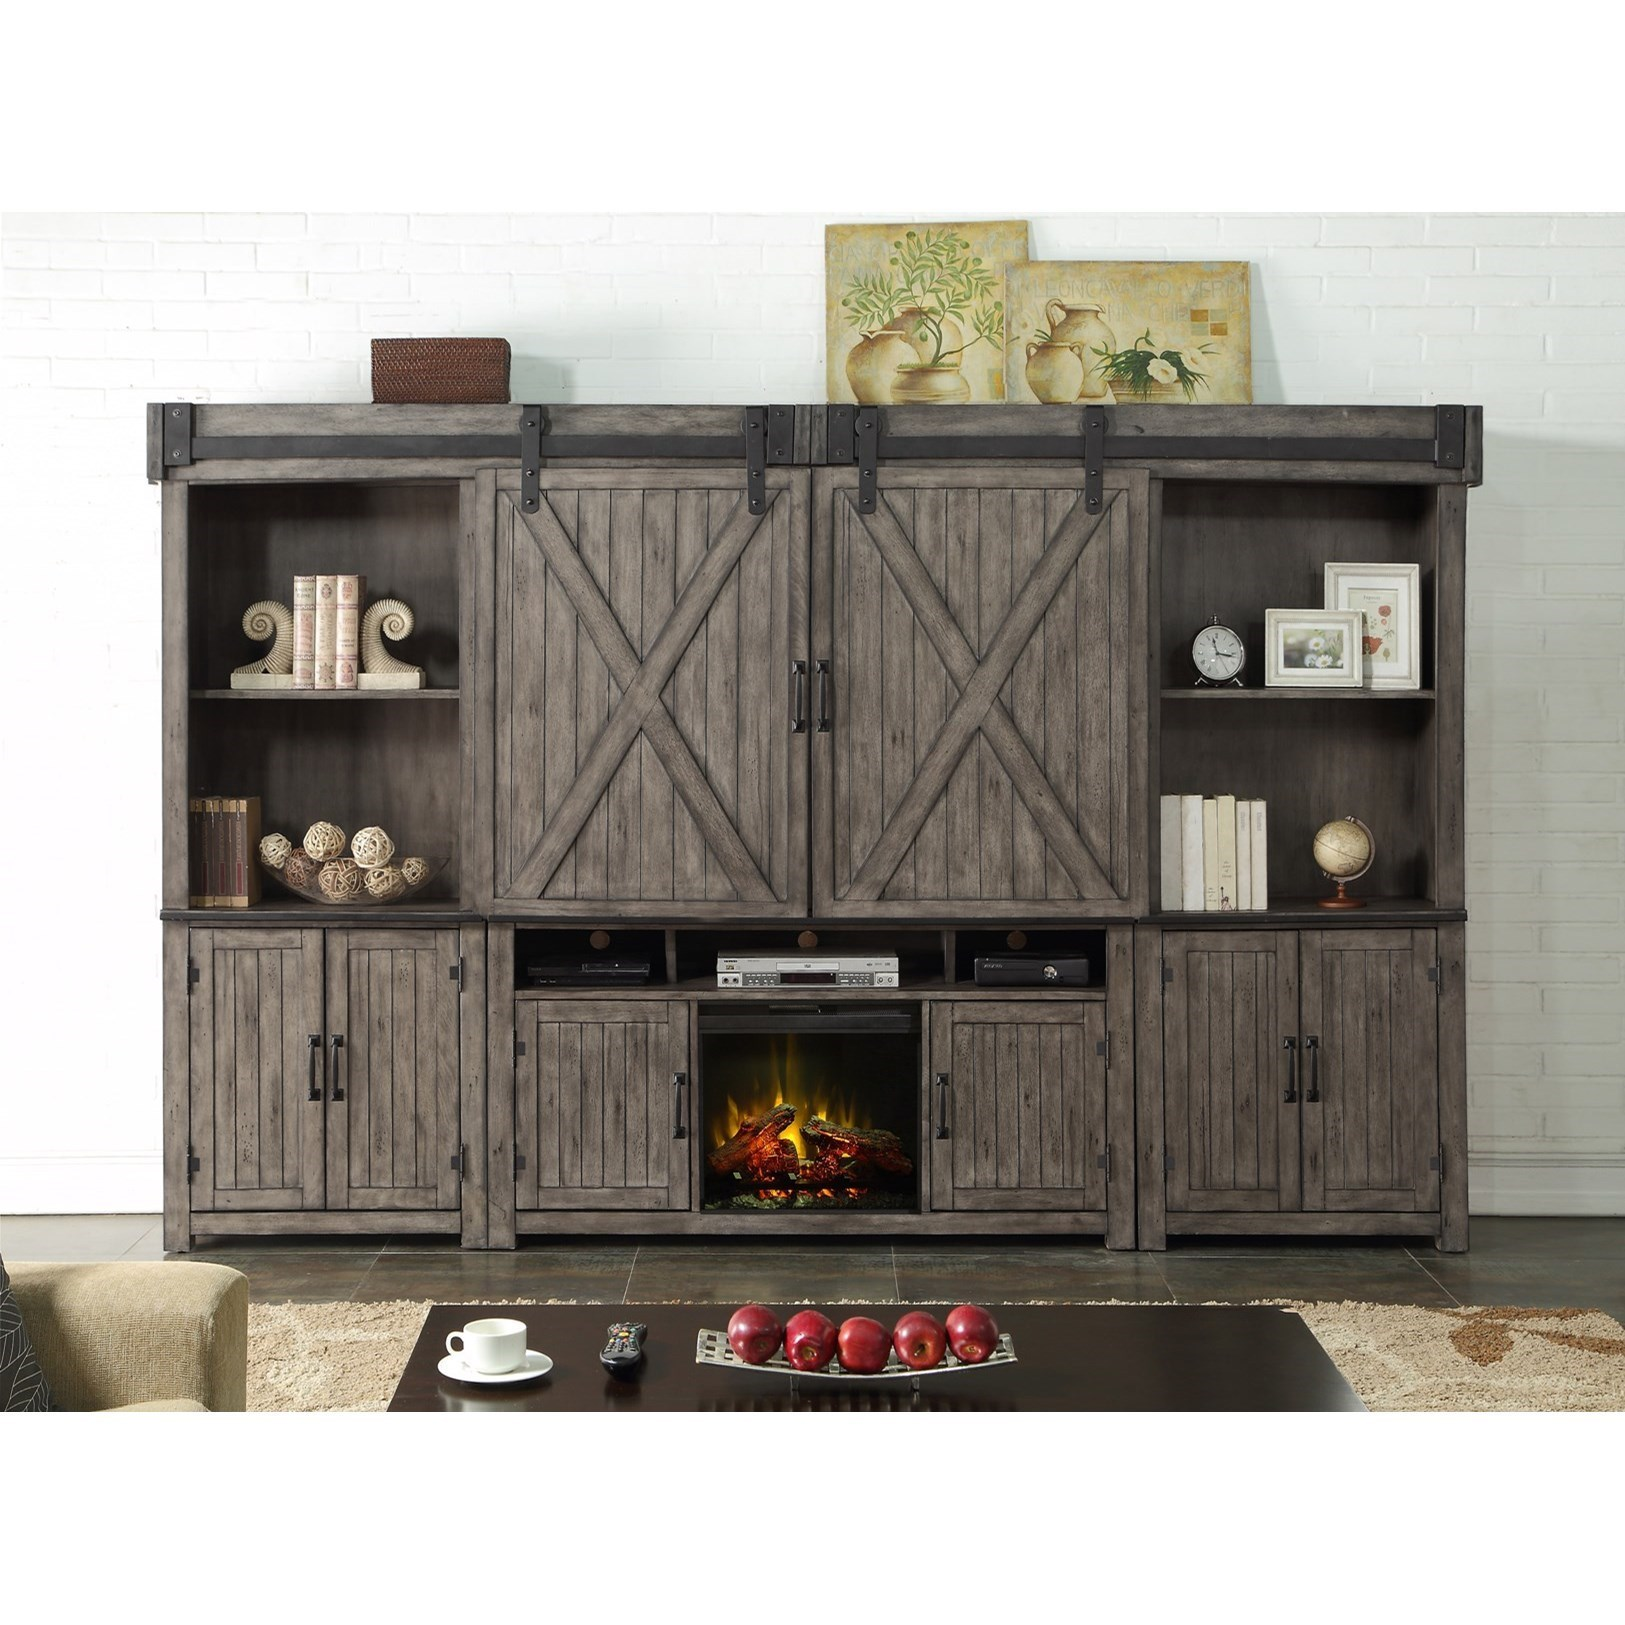 Fireplace Wall Units Storehouse Collection Fireplace Entertainment Wall Unit With Wire Management By Legends Furniture At Wayside Furniture